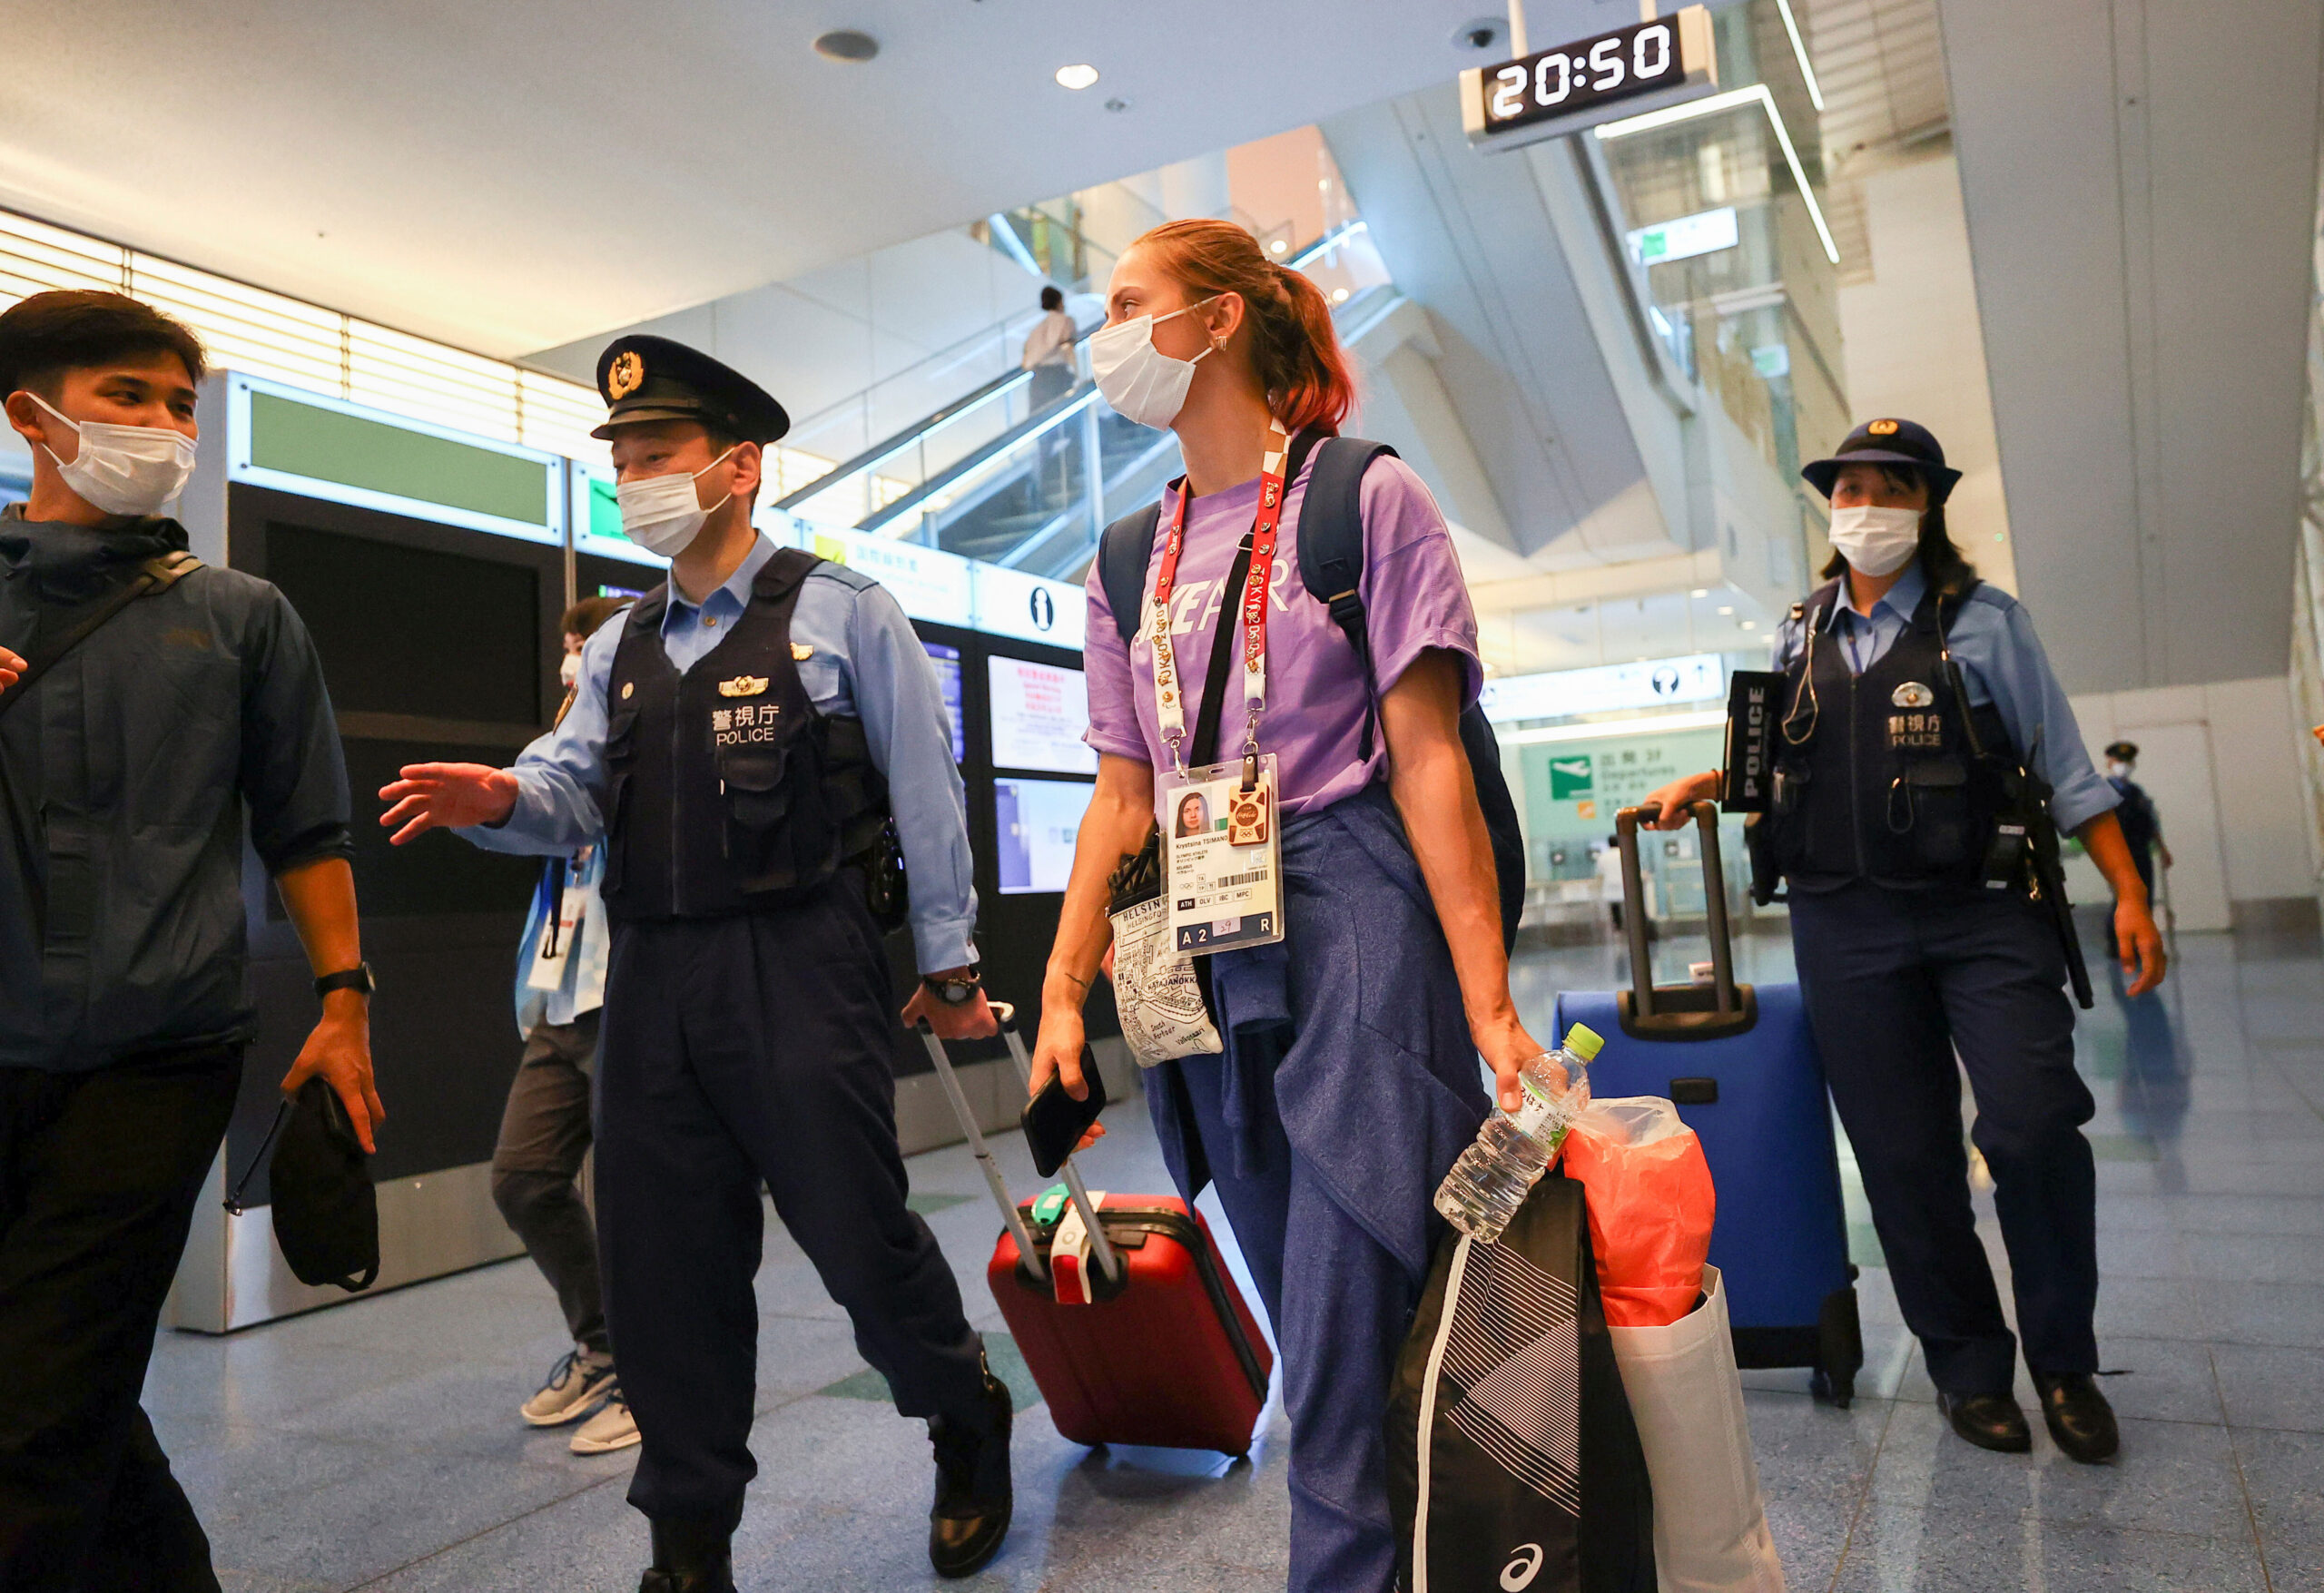 <i>Issei Kato/Reuters</i><br/>Kristina Timanovskaya is escorted by police officers at Haneda international airport in Tokyo